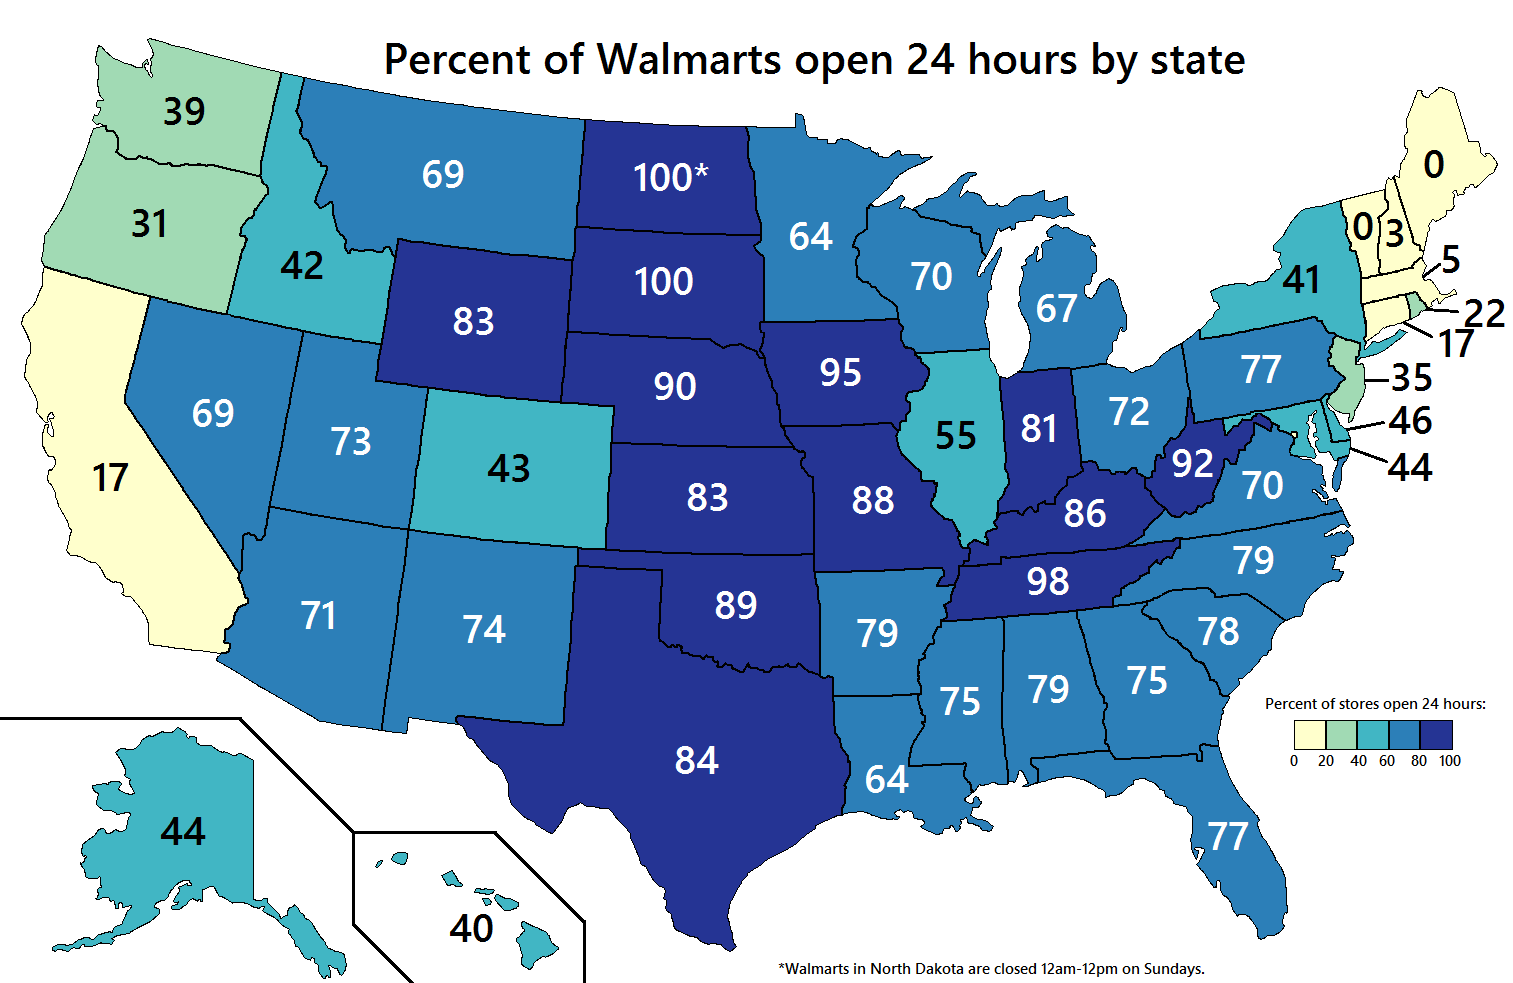 Percent of Walmart stores open 24 hours by US state